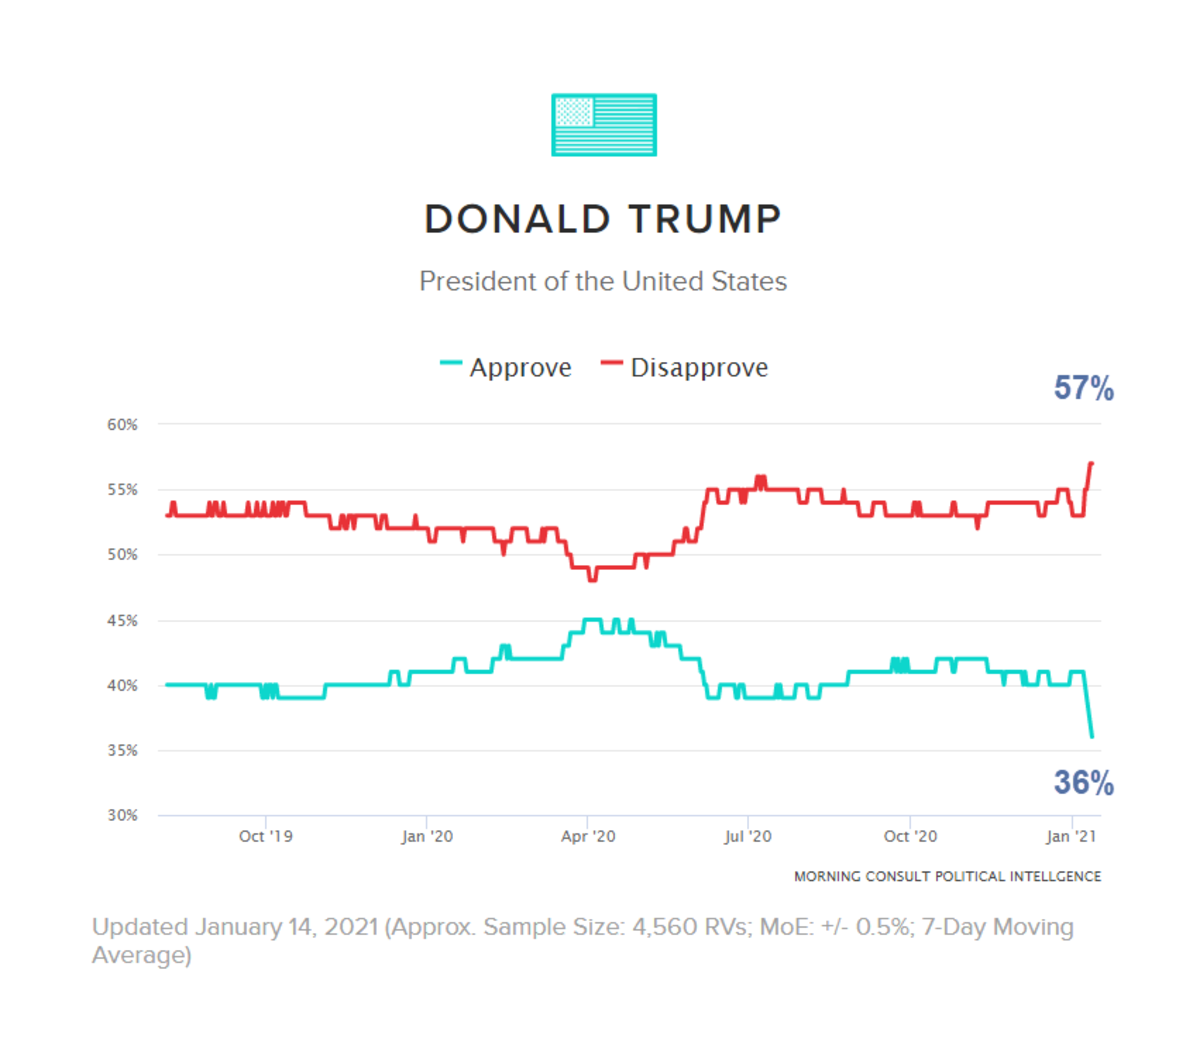 Donald Trump Approval Rating